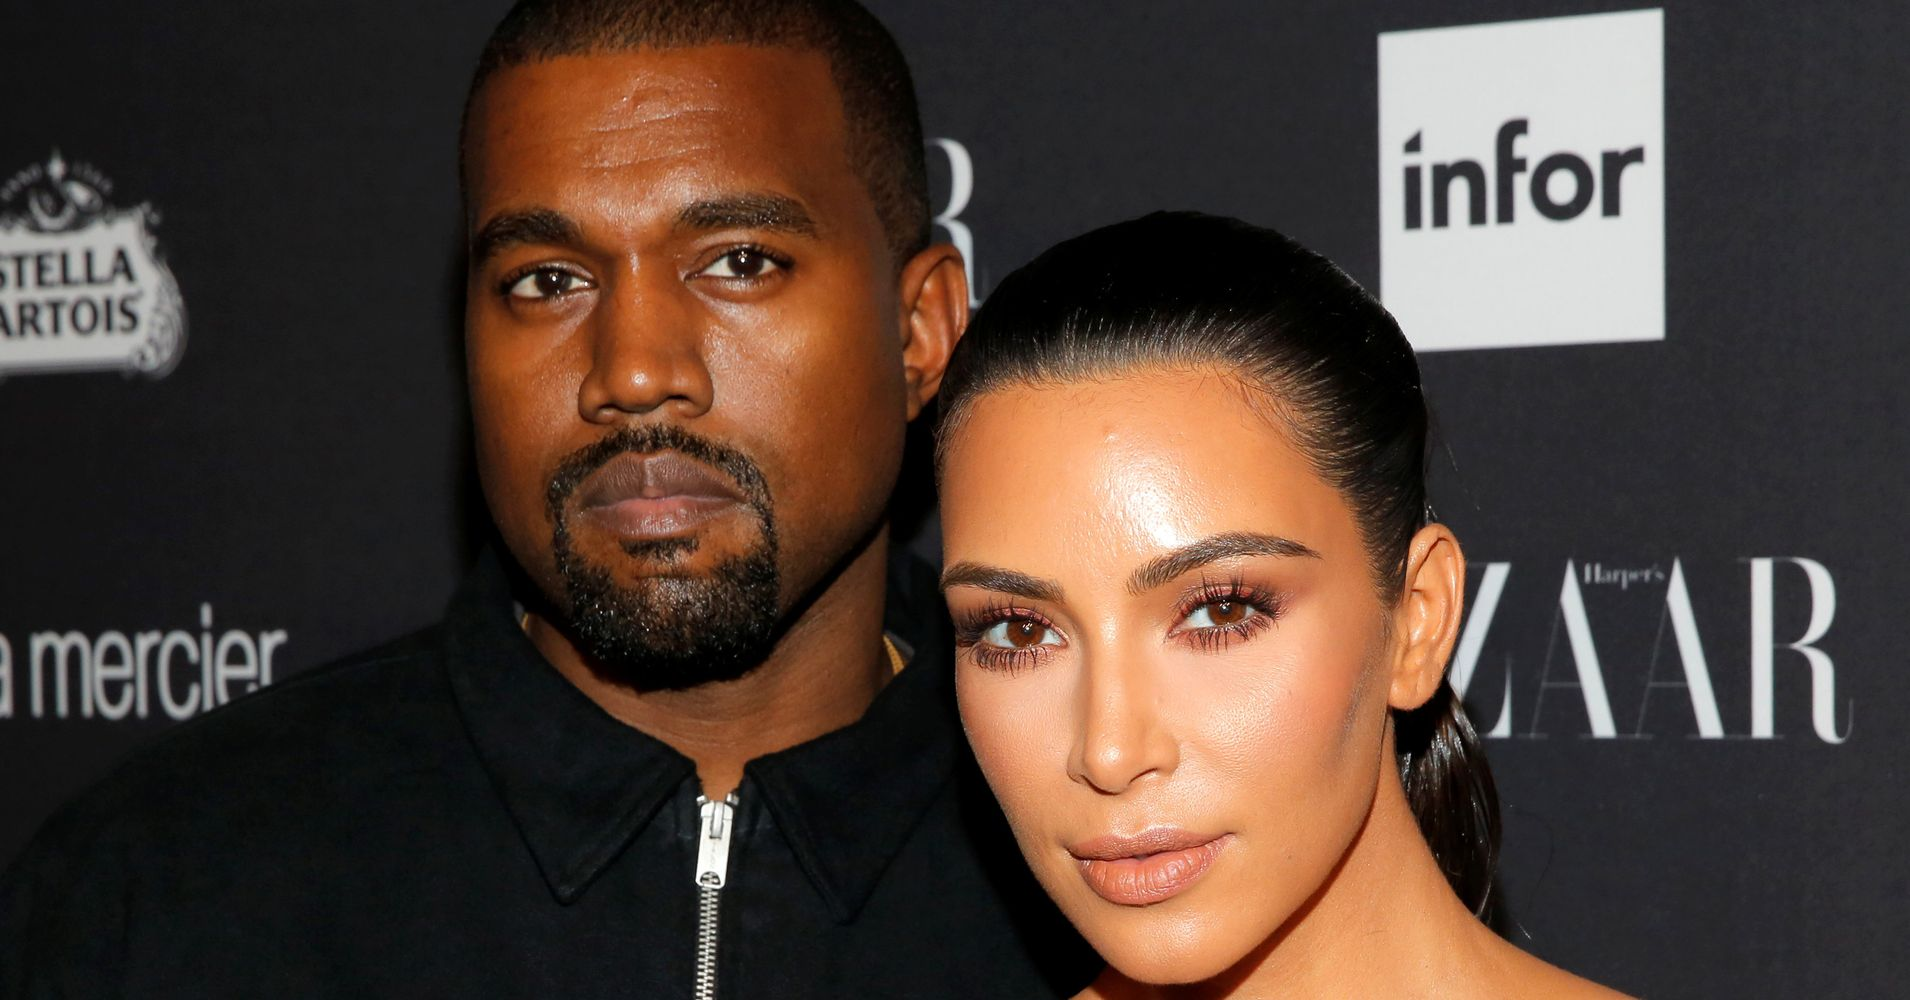 Kanye West Deletes Instagram Account After Valentine's Day Posts